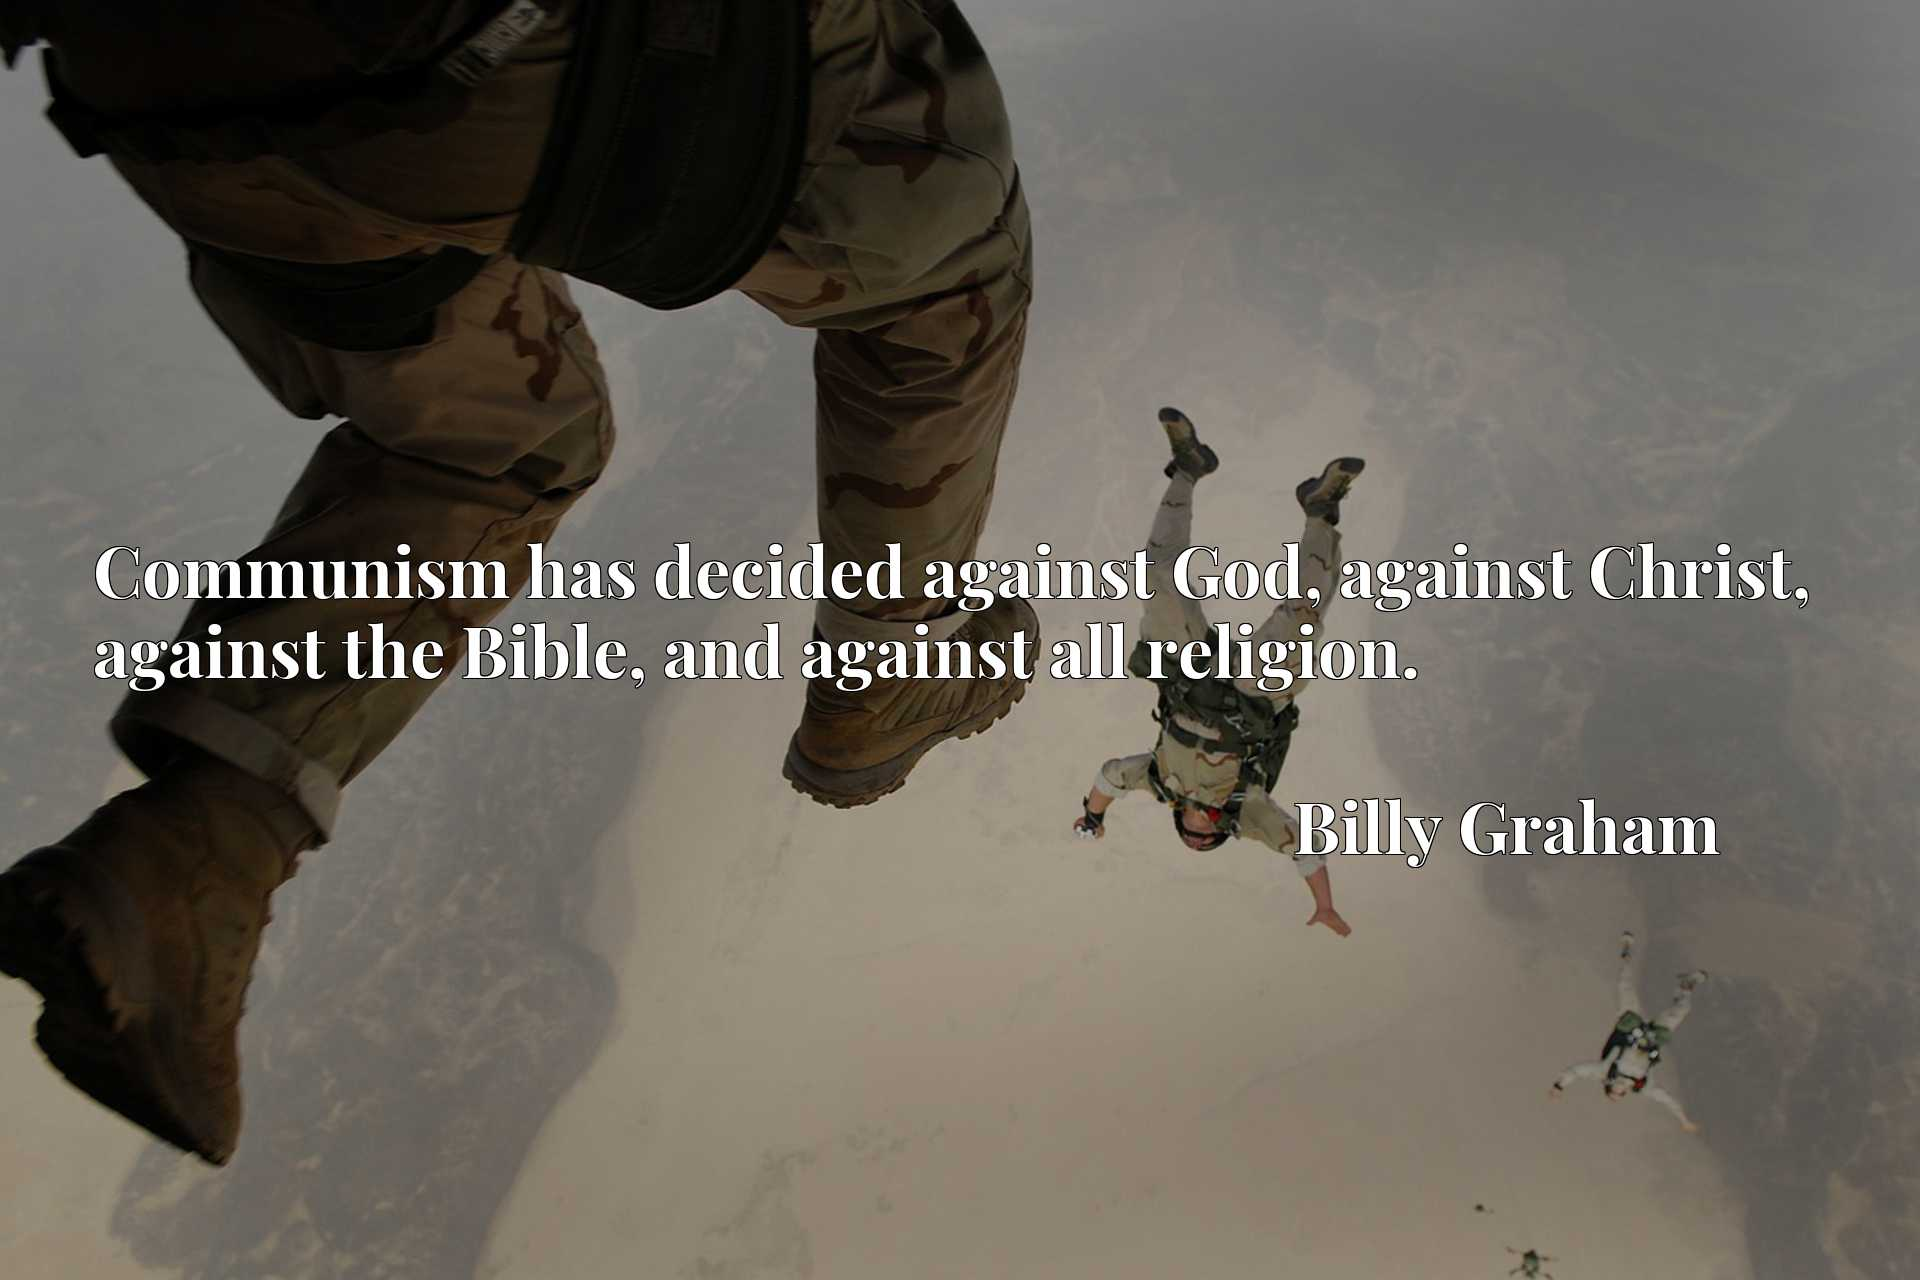 Communism has decided against God, against Christ, against the Bible, and against all religion.